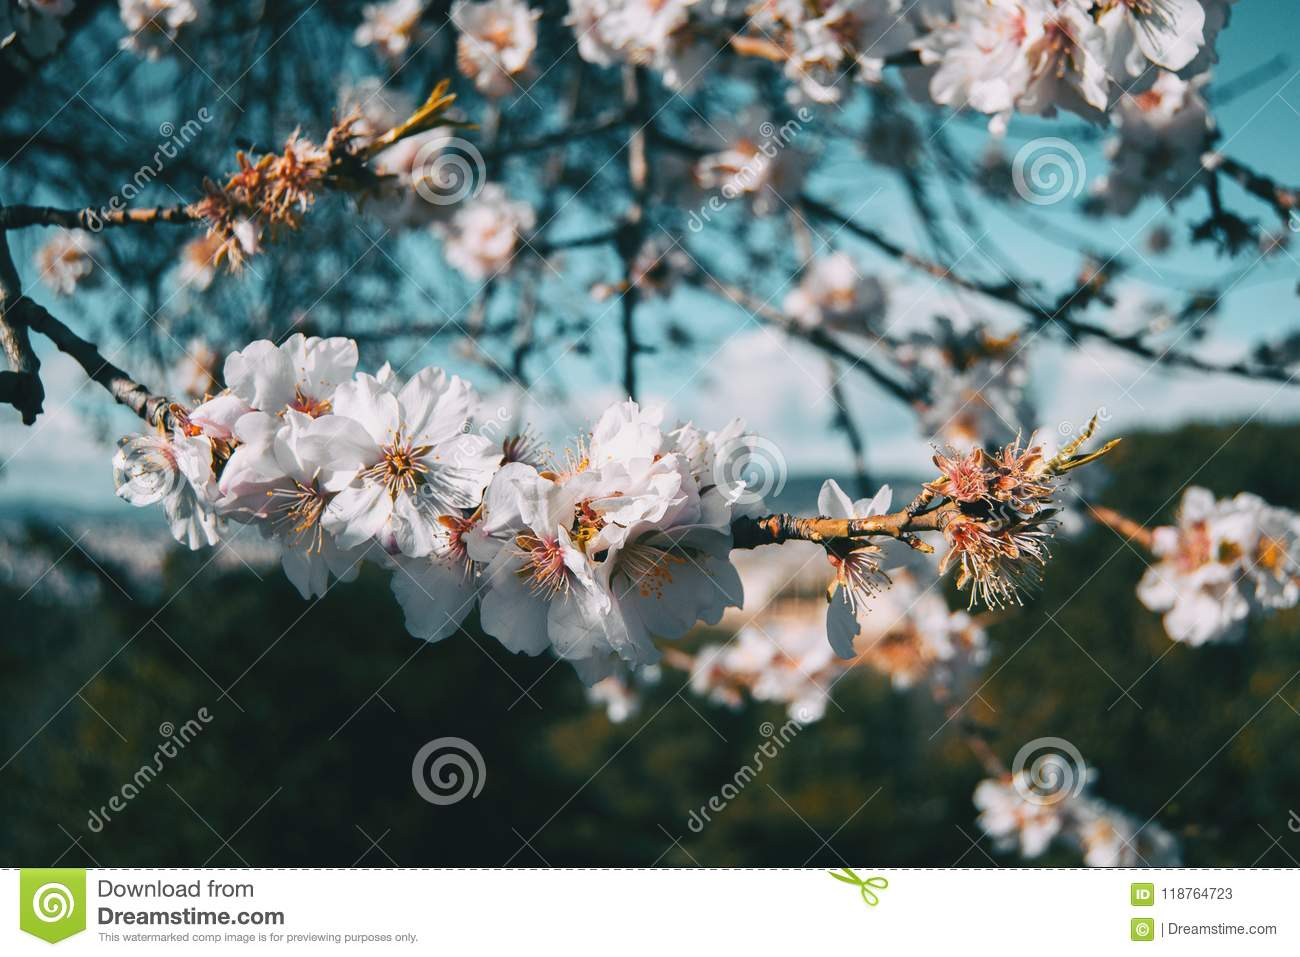 White Flowers On The Branch Of A Tree With Blue Sky Background Stock